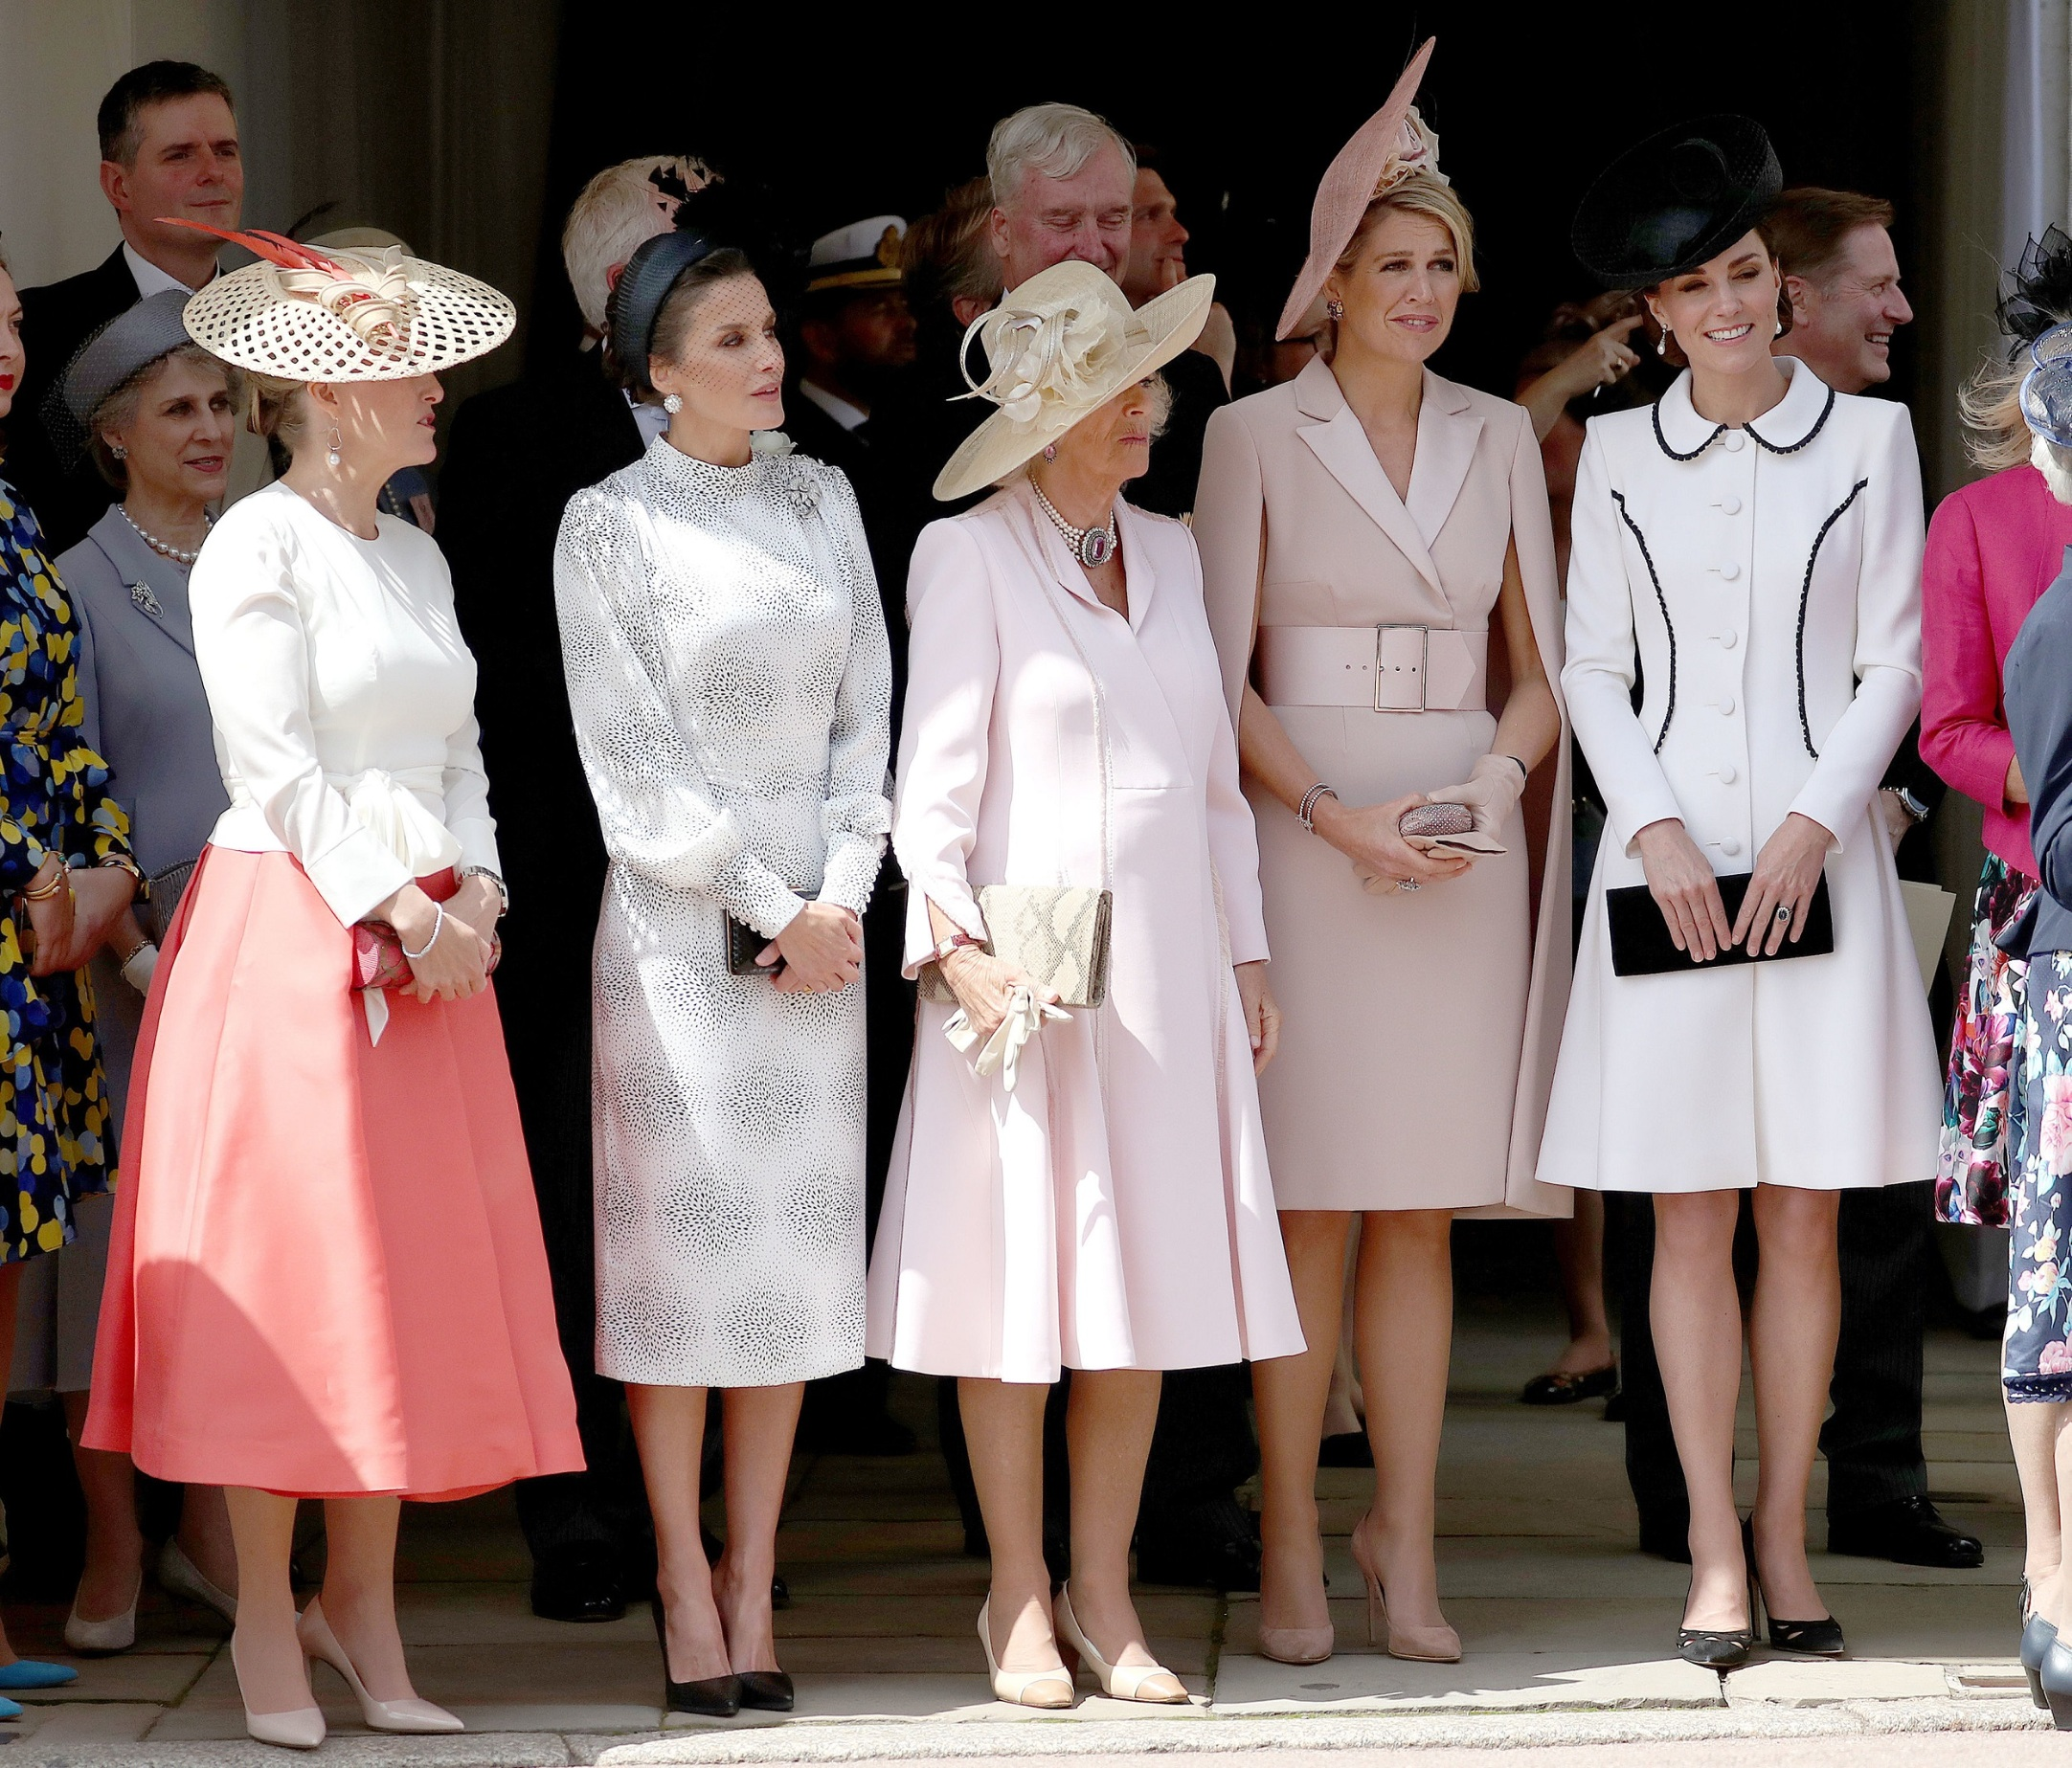 WINDSOR, ENGLAND - JUNE 17: Sophie, Countess of Wessex, Queen Letizia of Spain, Camilla, Duchess of Cornwall, Queen Maxima of the Netherlands and Catherine, Duchess of Cambridge at the Order of the Garter Service at St George's Chapel in Windsor Castle on June 17, 2019 in Windsor, England. The Order of the Garter is the senior and oldest British Order of Chivalry, founded by Edward III in 1348. The Garter ceremonial dates from 1948, when formal installation was revived by King George VI for the first time since 1805. (Photo by Steve Parsons - WPA Pool/Getty Images)